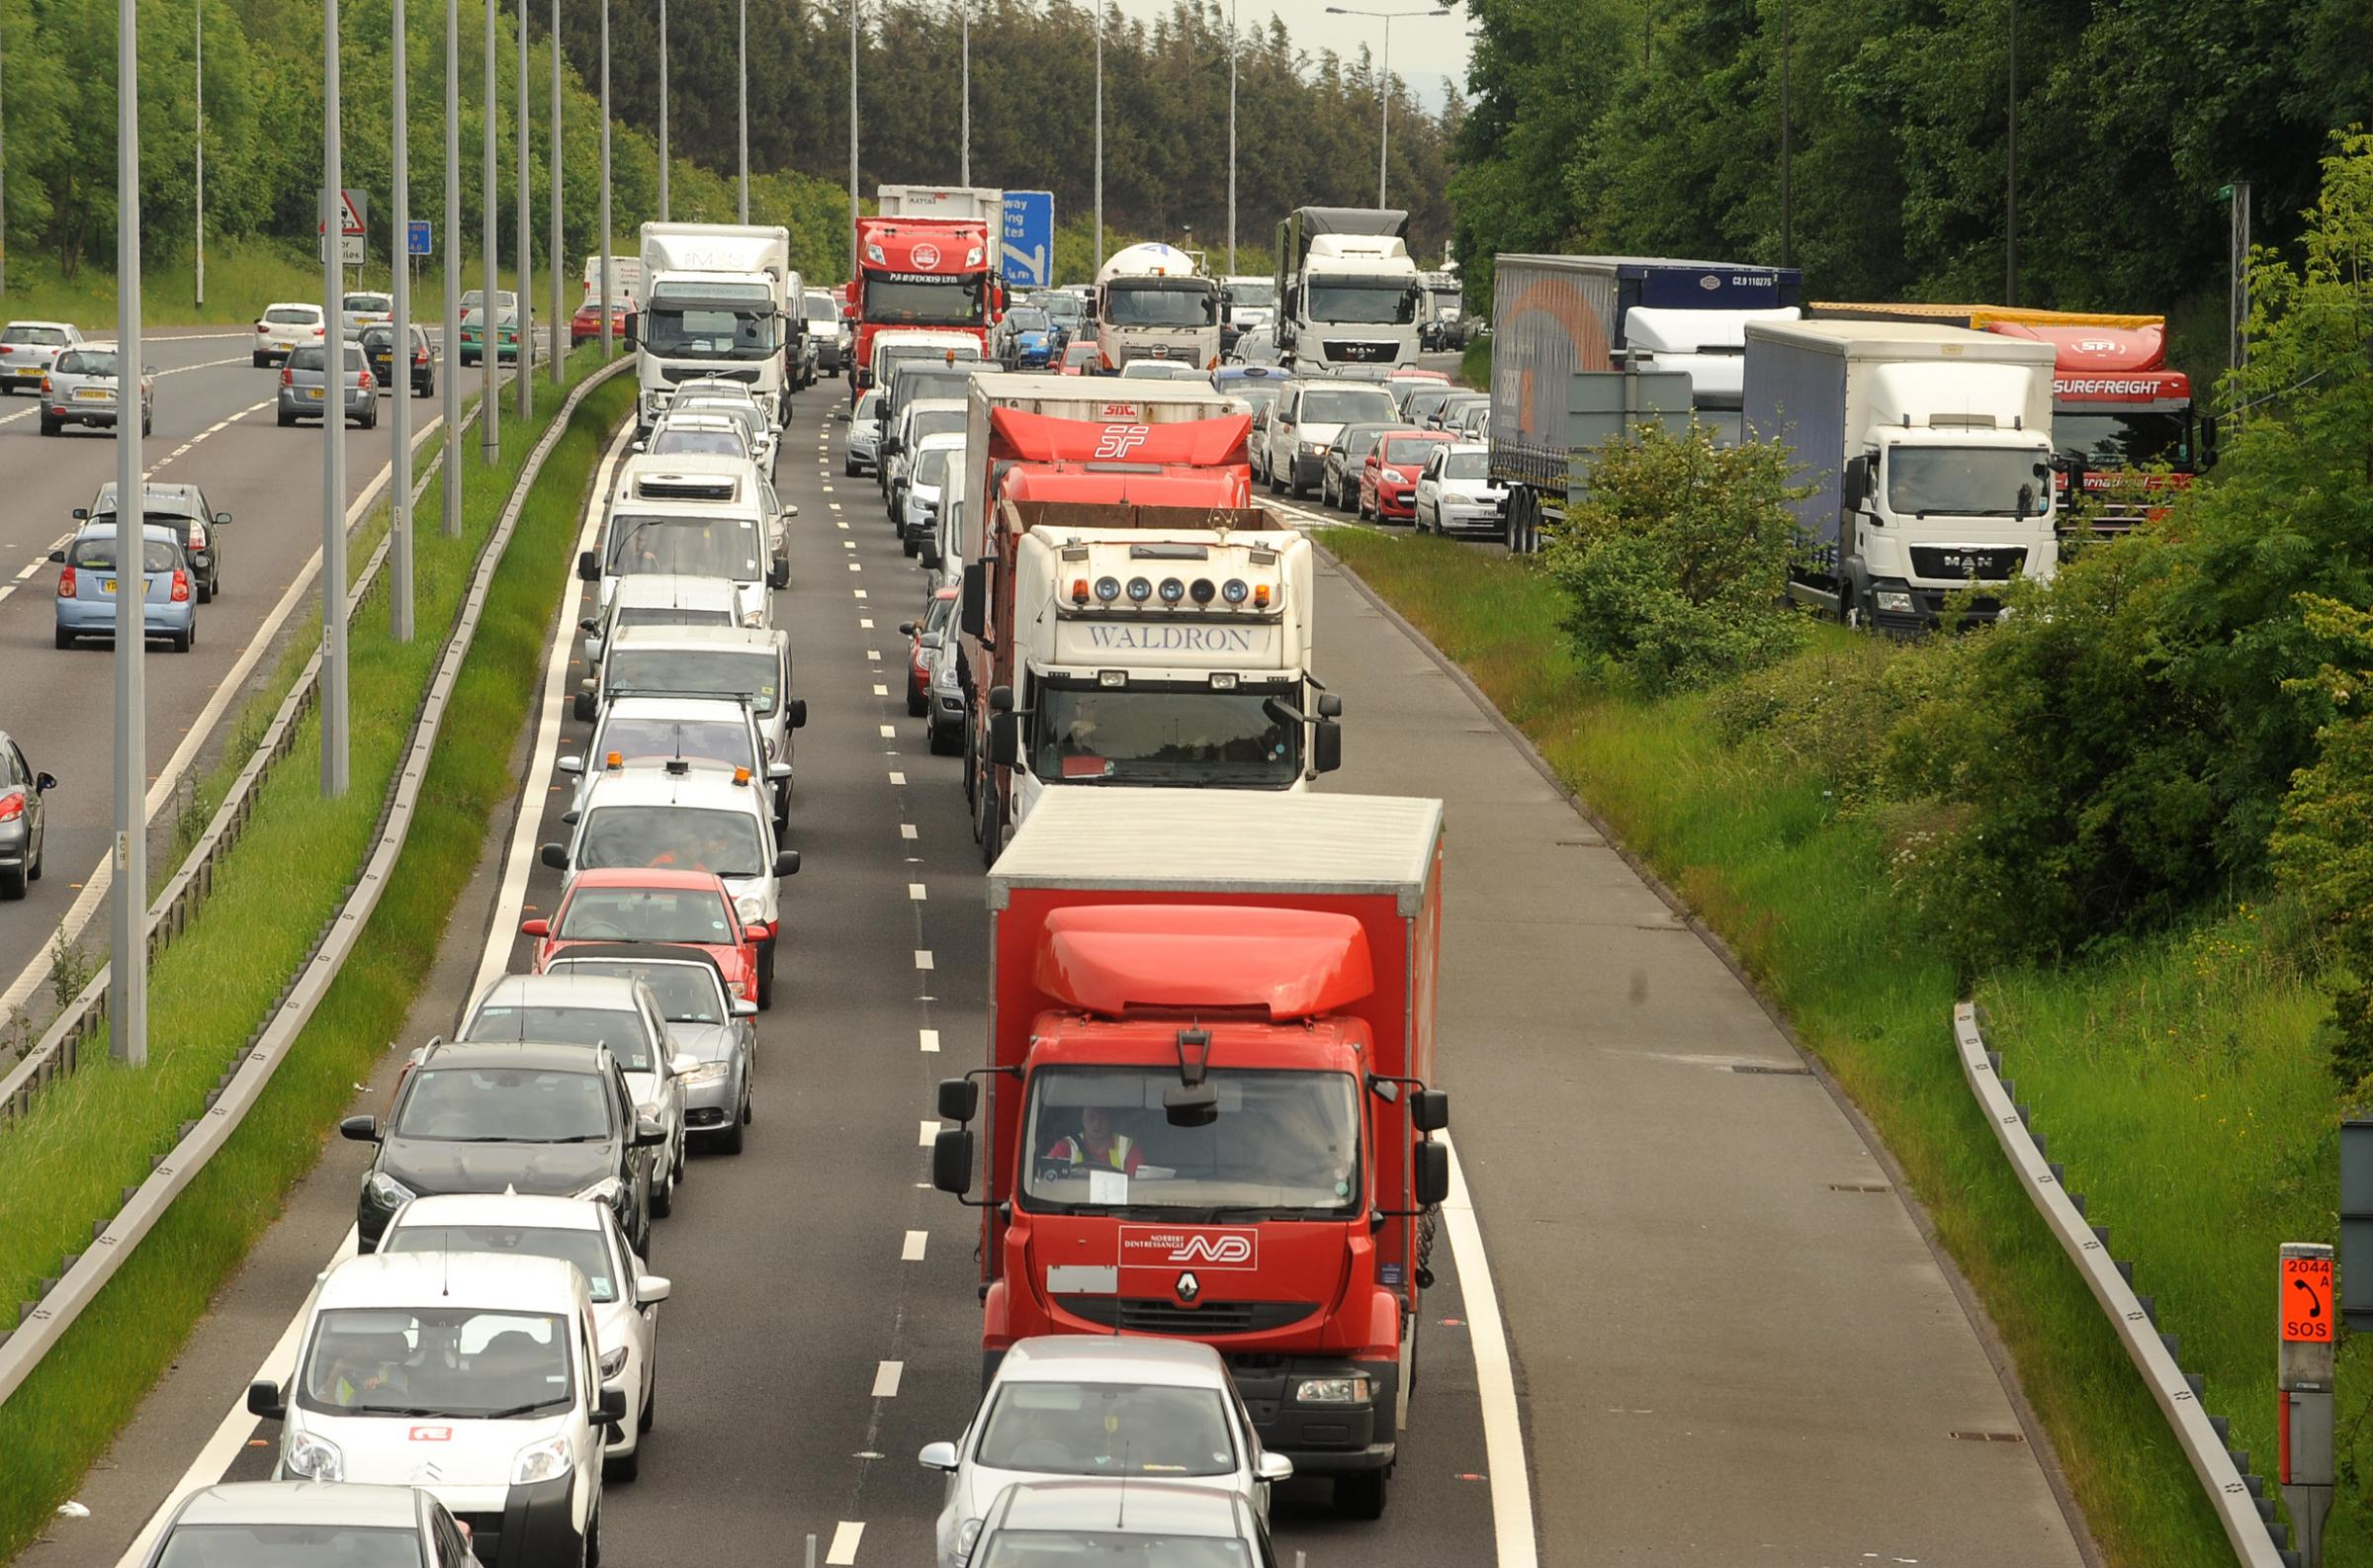 A broken down lorry is causing traffic delays around the M606